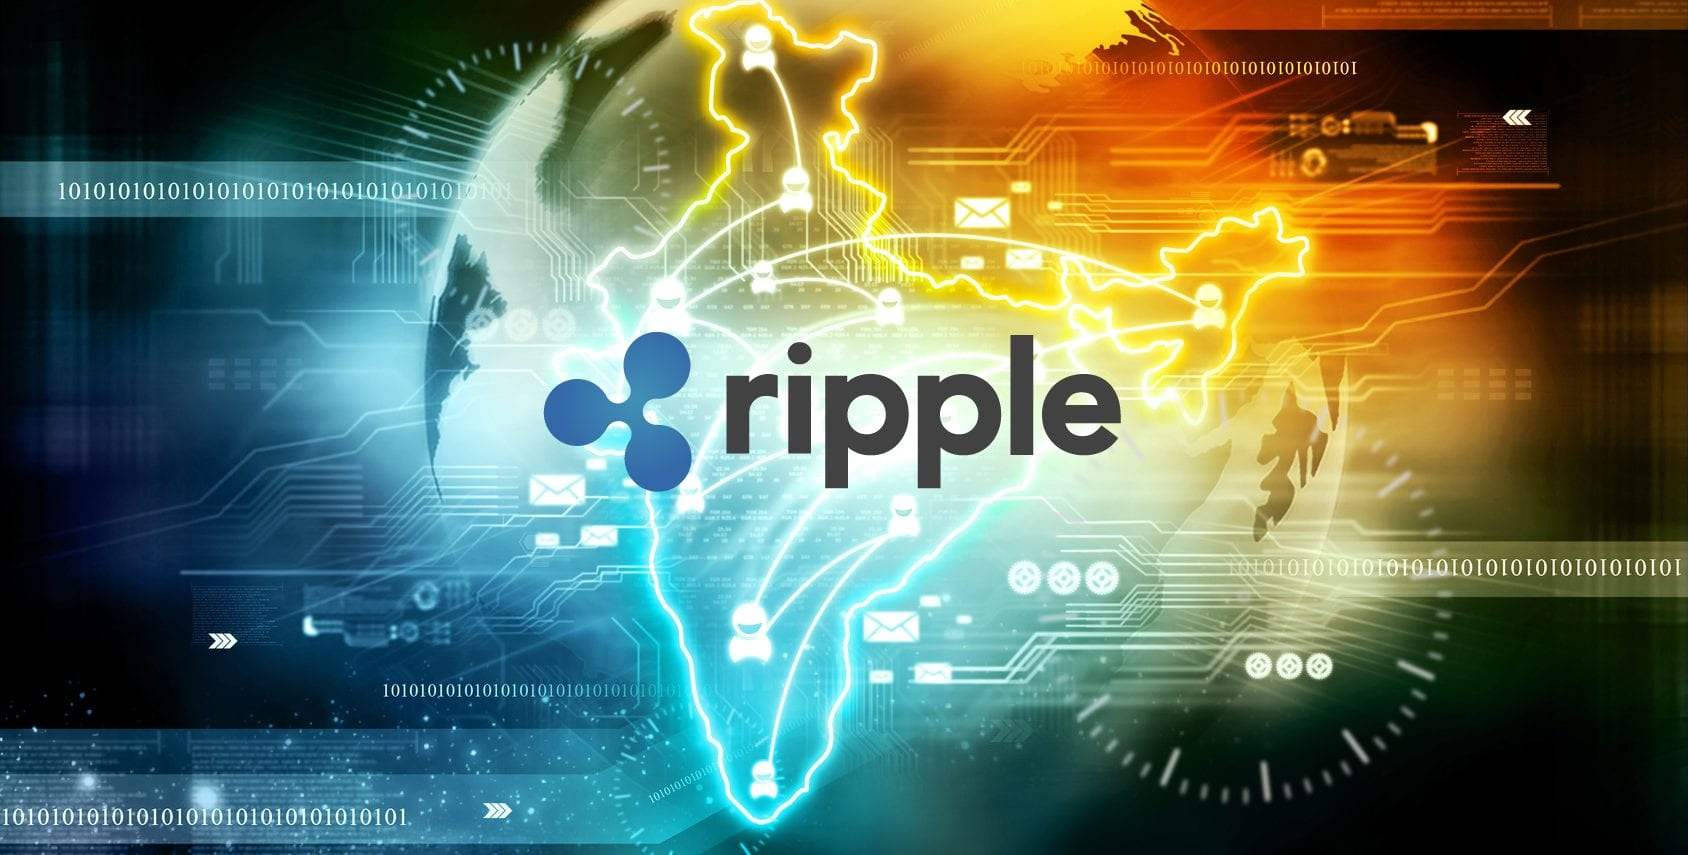 banknetwork - Ripple Donates $2 Million While Visa And Mastercard Reportedly Fight To Buy Ripple Partner, Earthport